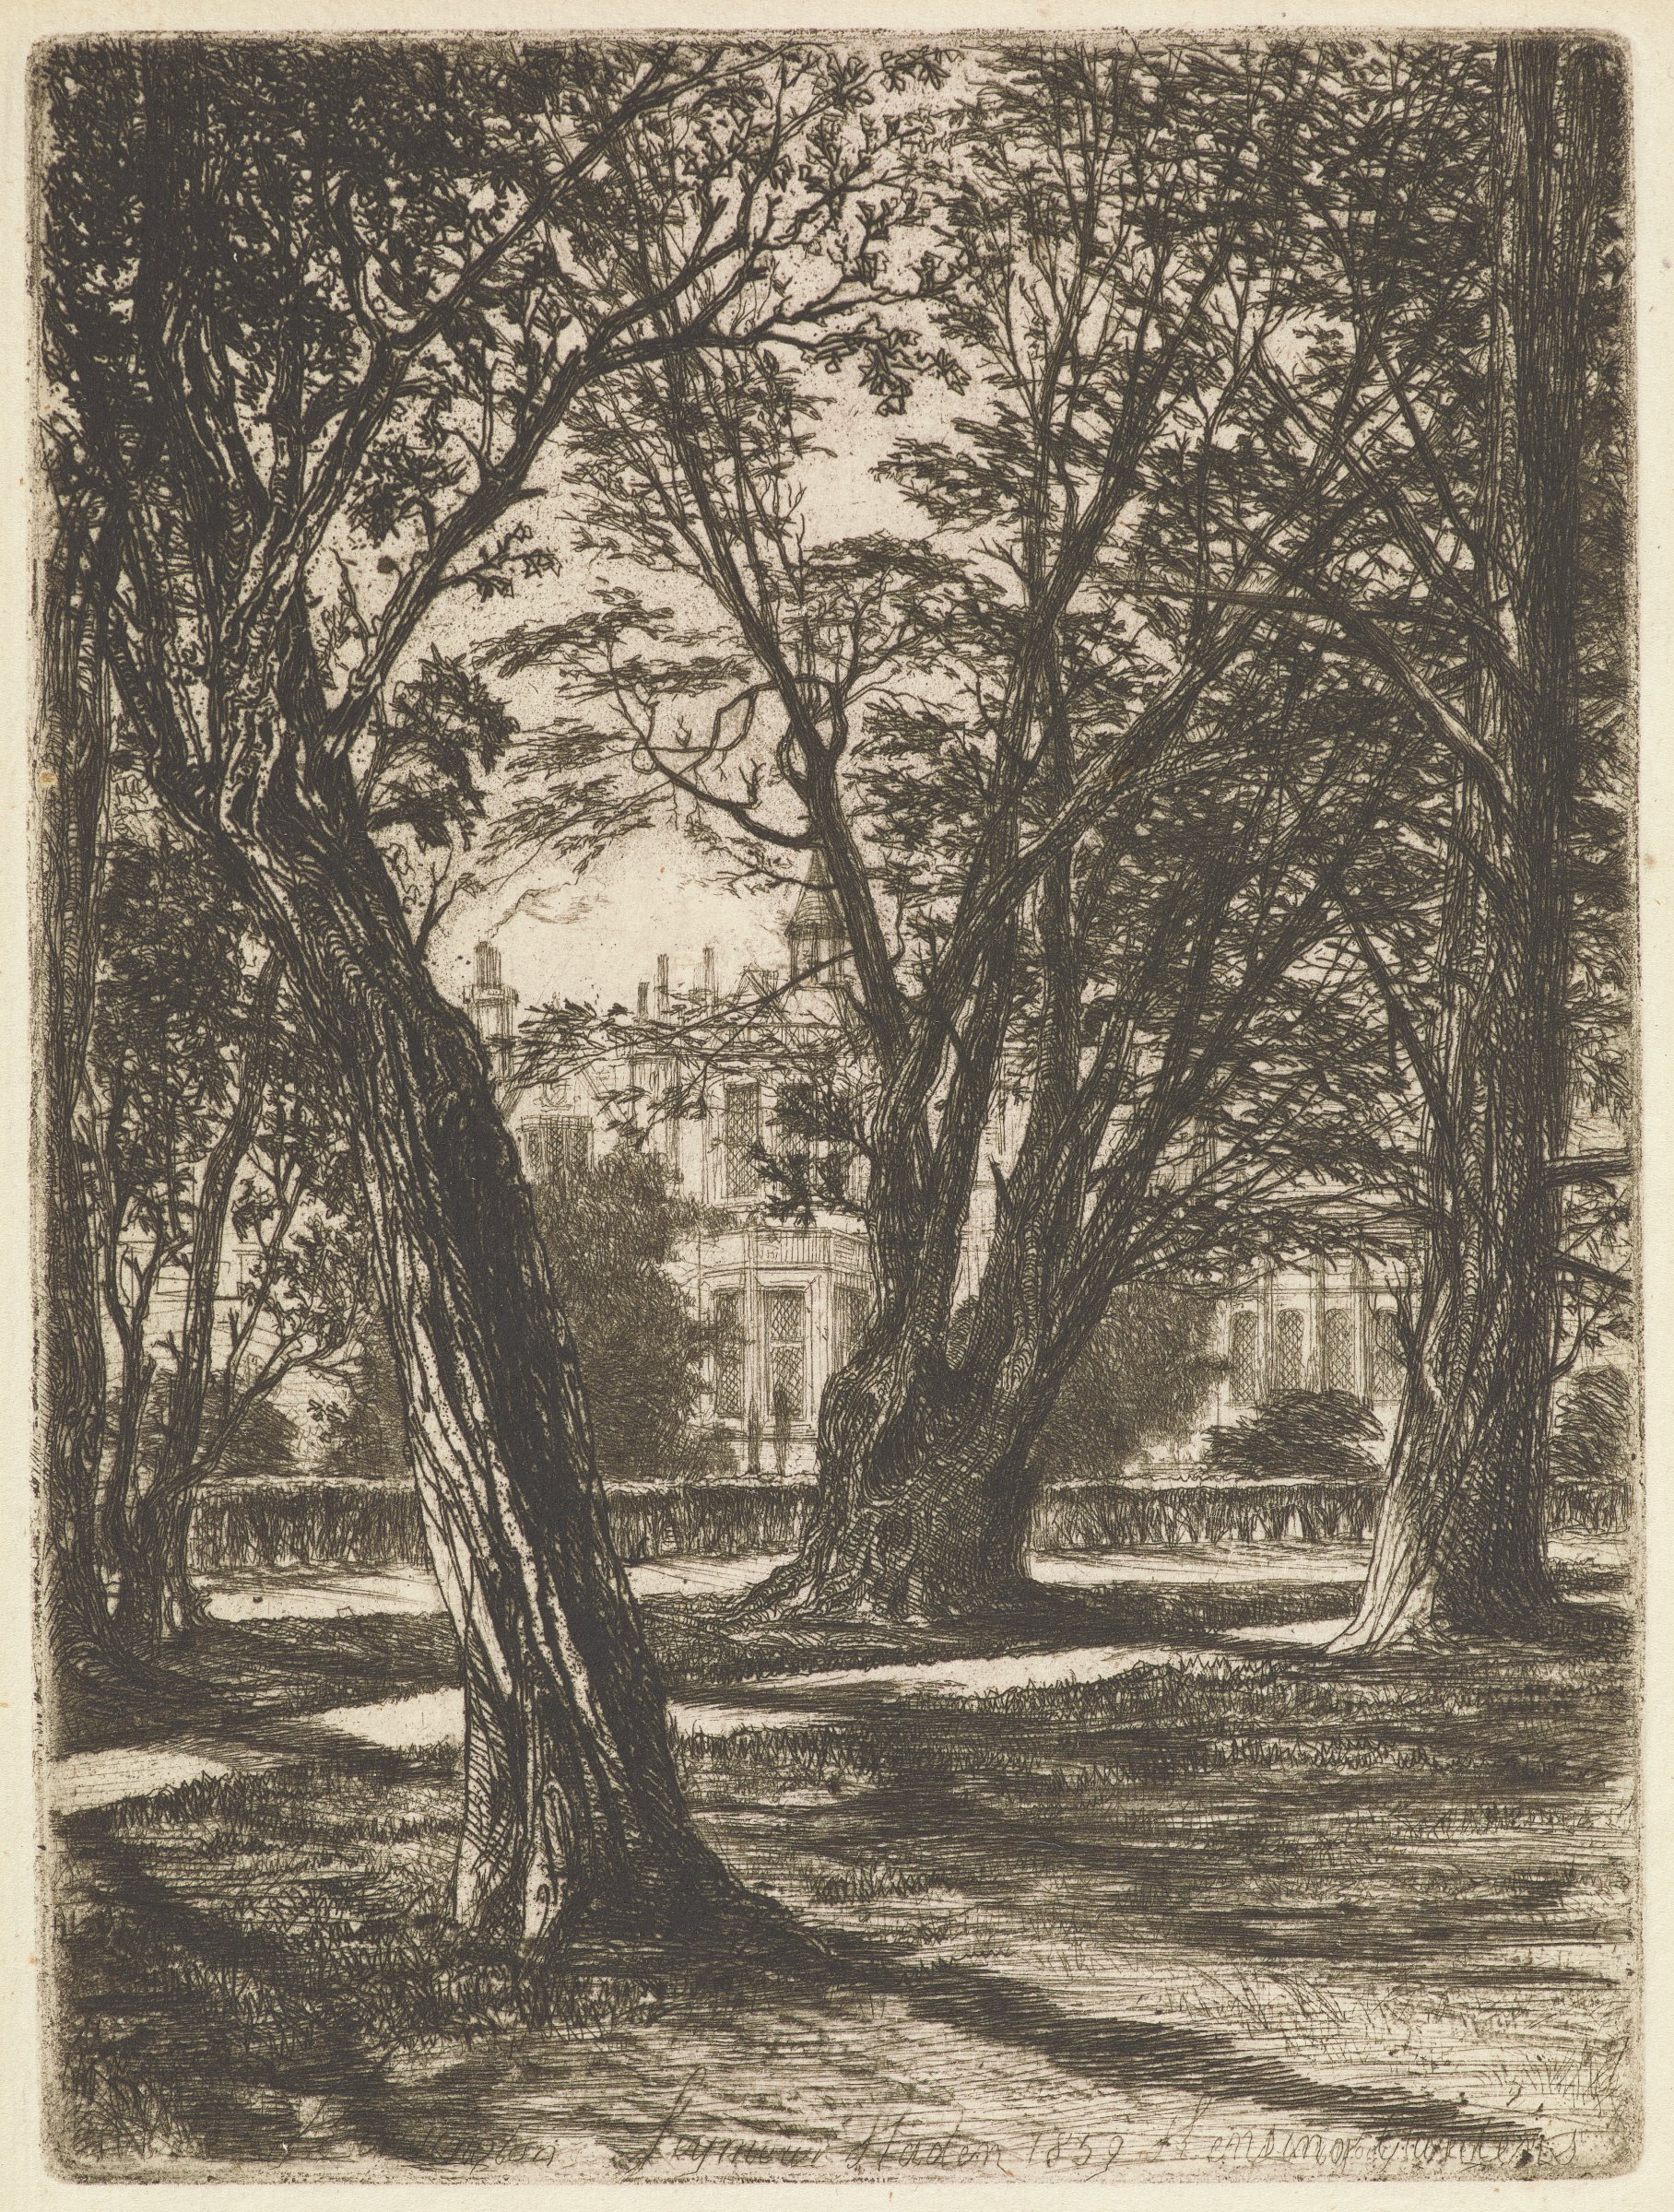 Behind a grove of trees a large house is seen. This is a depiction of Lord Harrington's house from Kensington Garden.